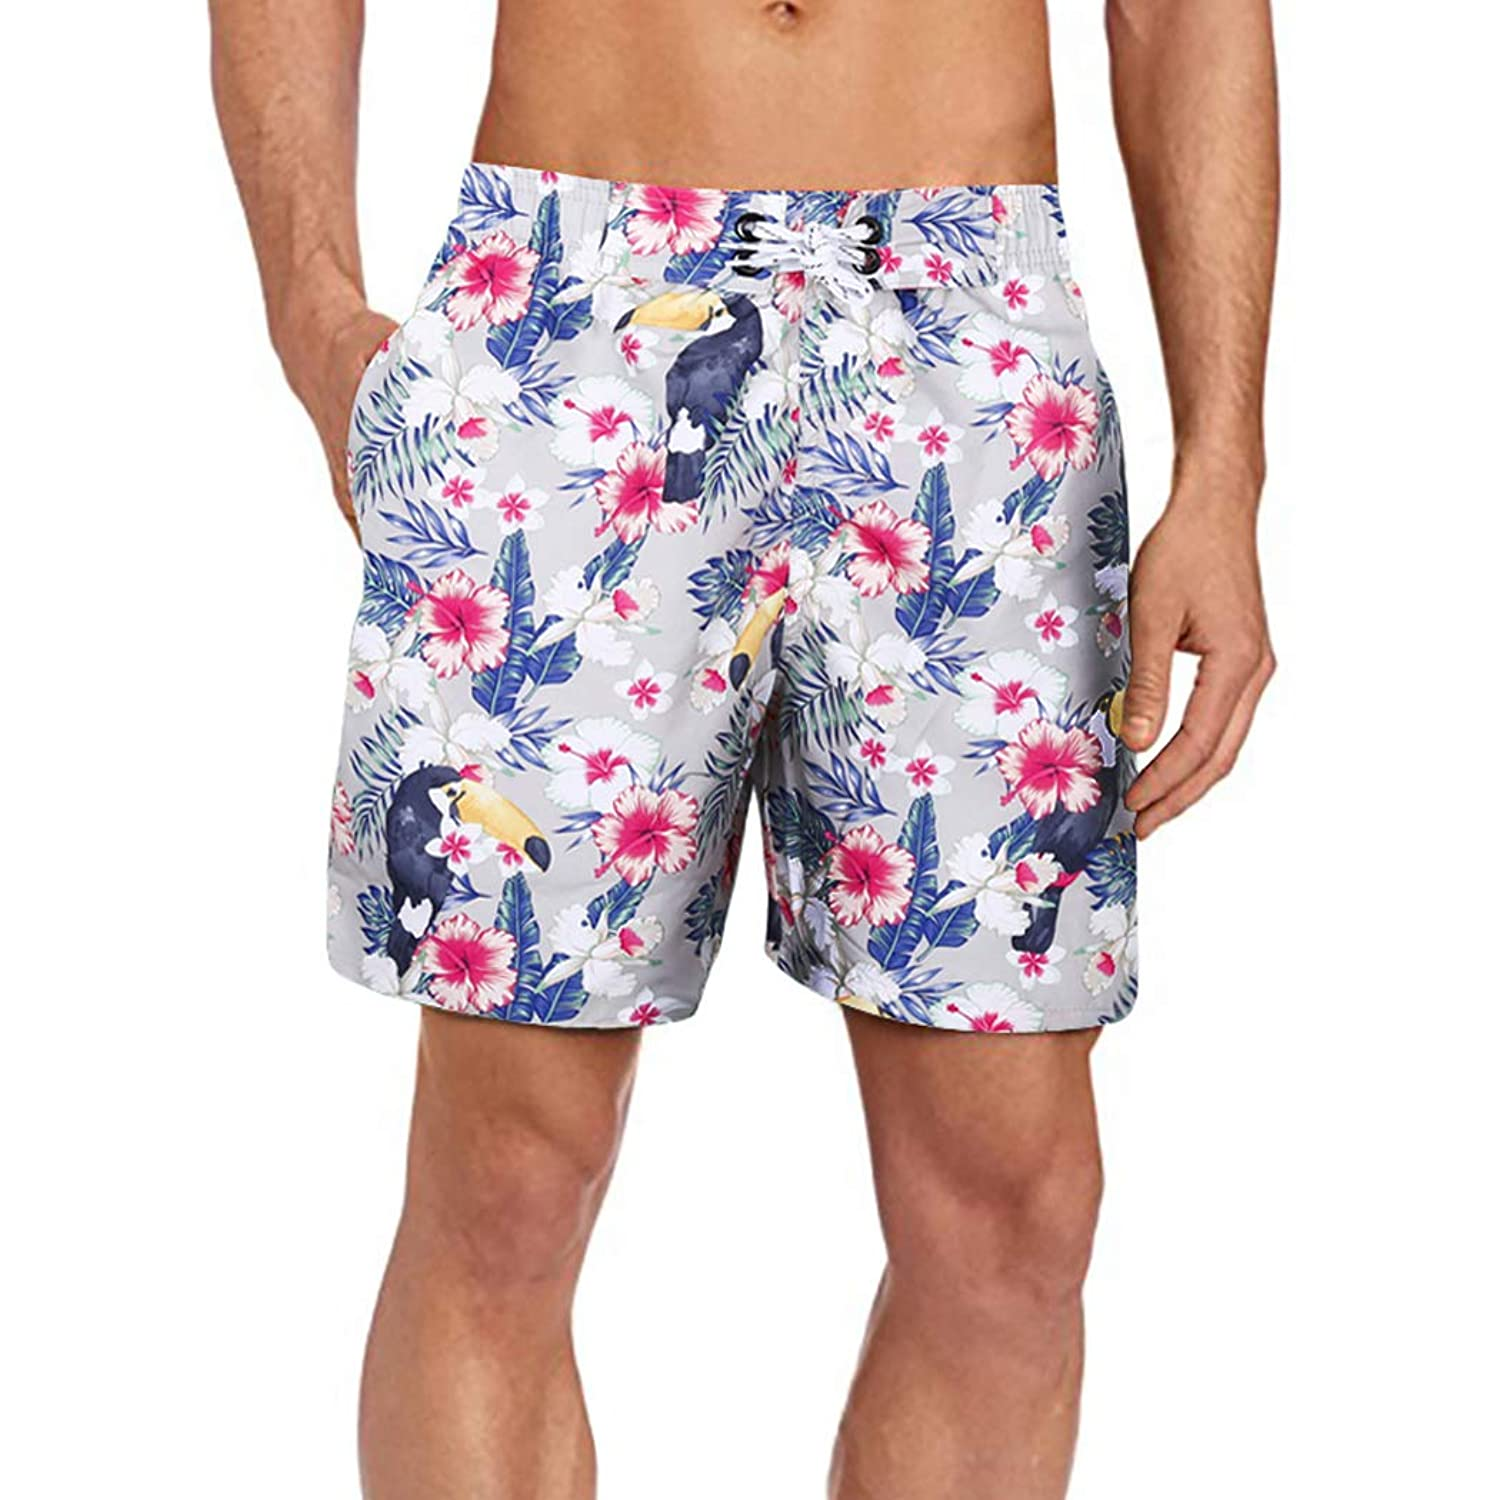 ae2e0ce994 It has some useful characteristics, sweat-absorbing, quick drying, etc.  Normally it takes 5 to 10 minutes, swim shorts ...